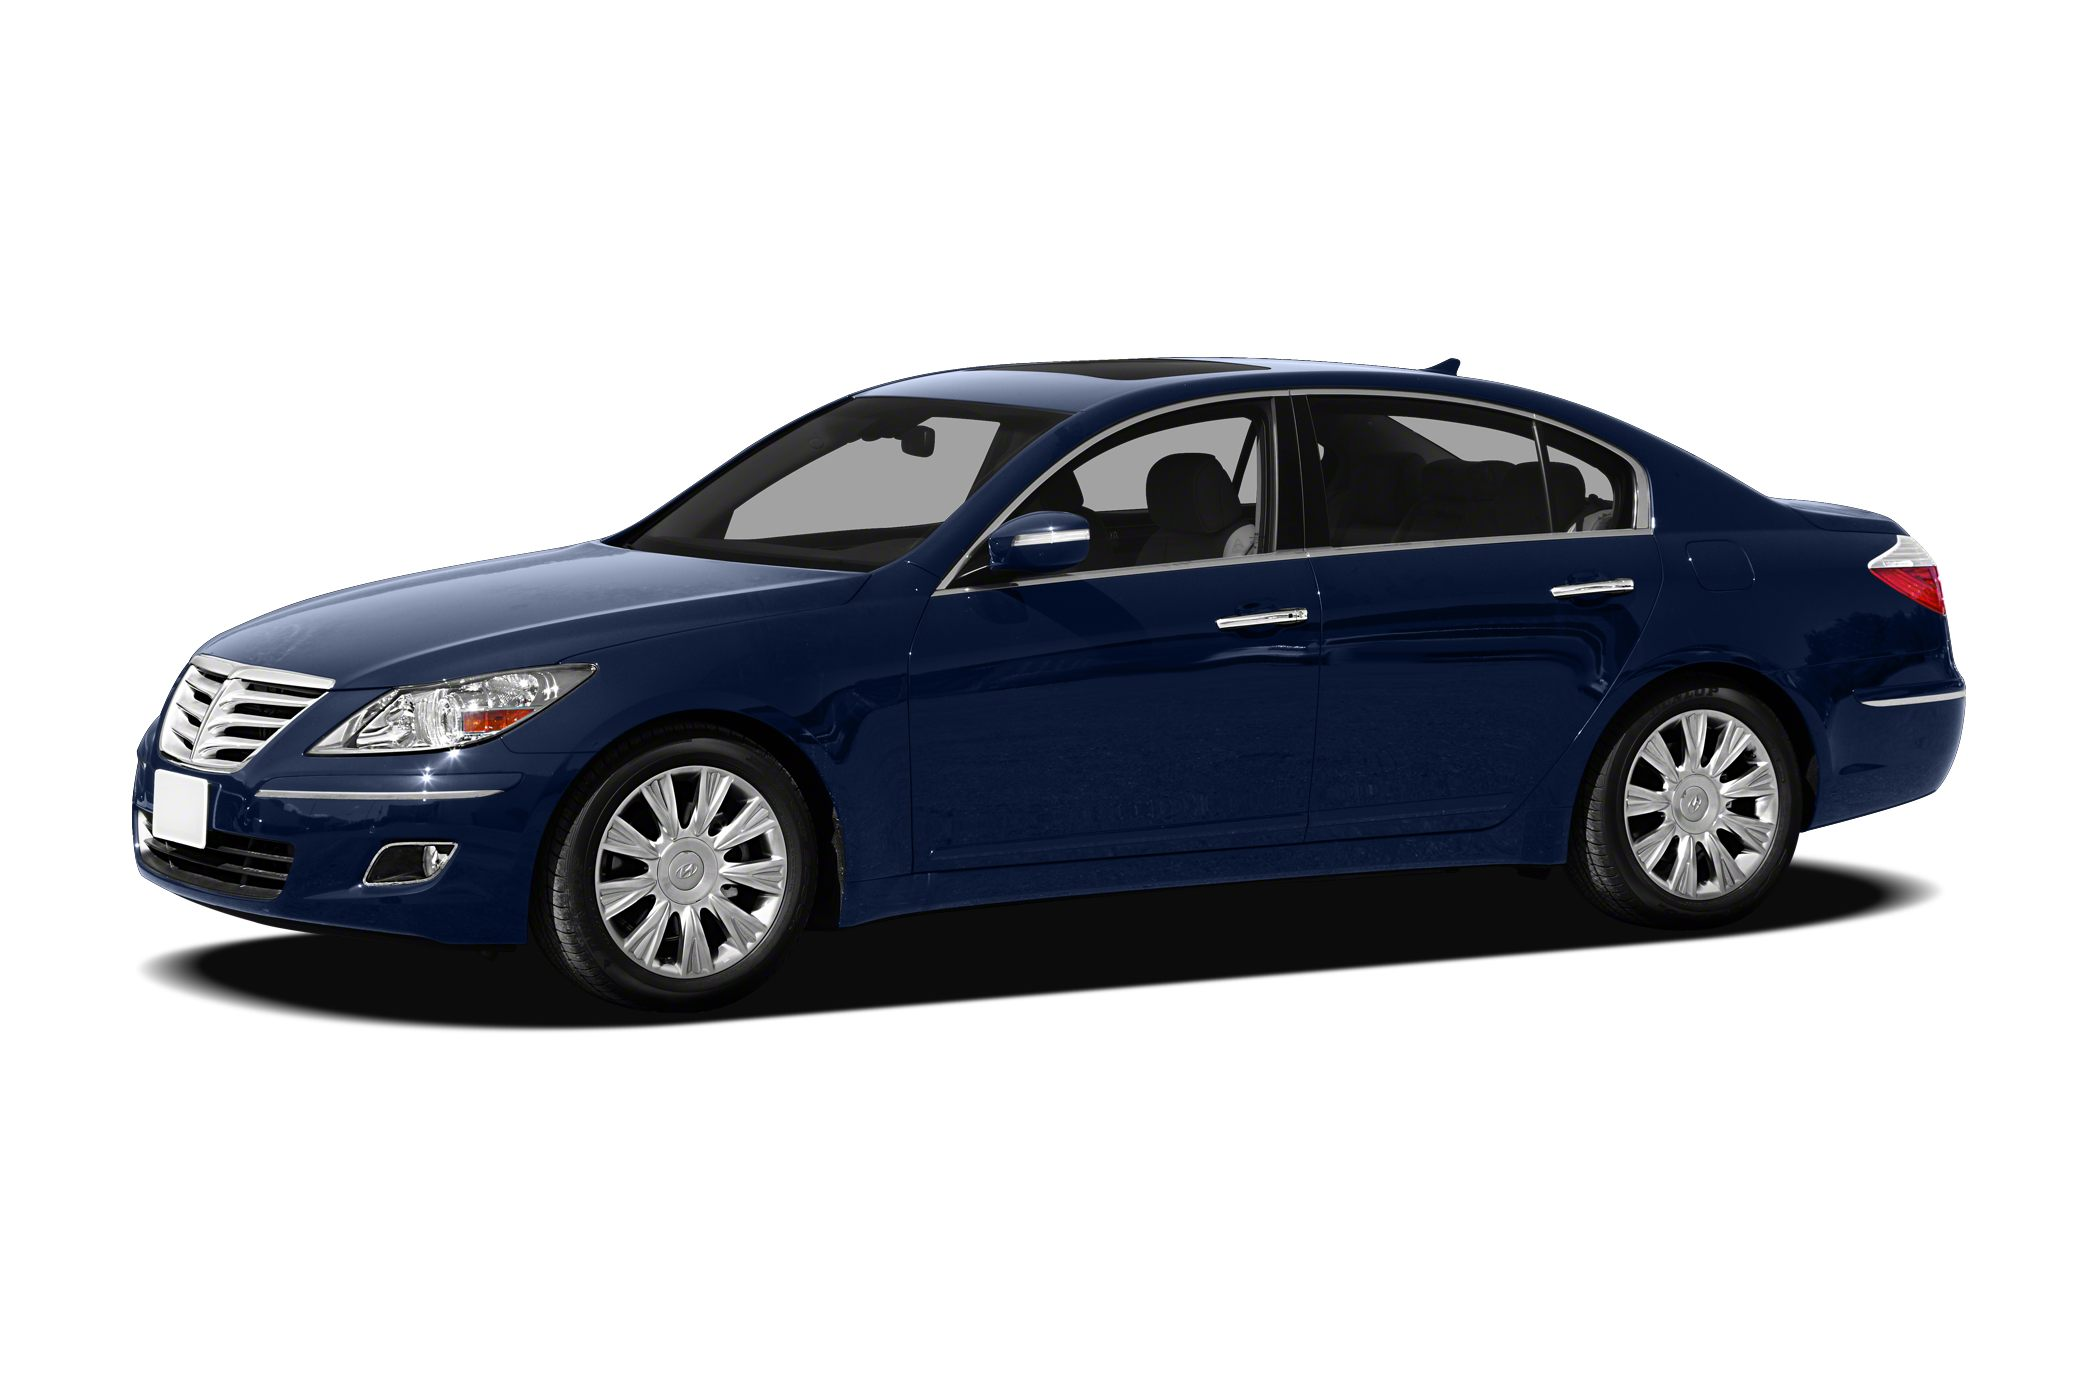 2011 Hyundai Genesis 3.8 Sedan for sale in Joplin for $23,997 with 25,012 miles.